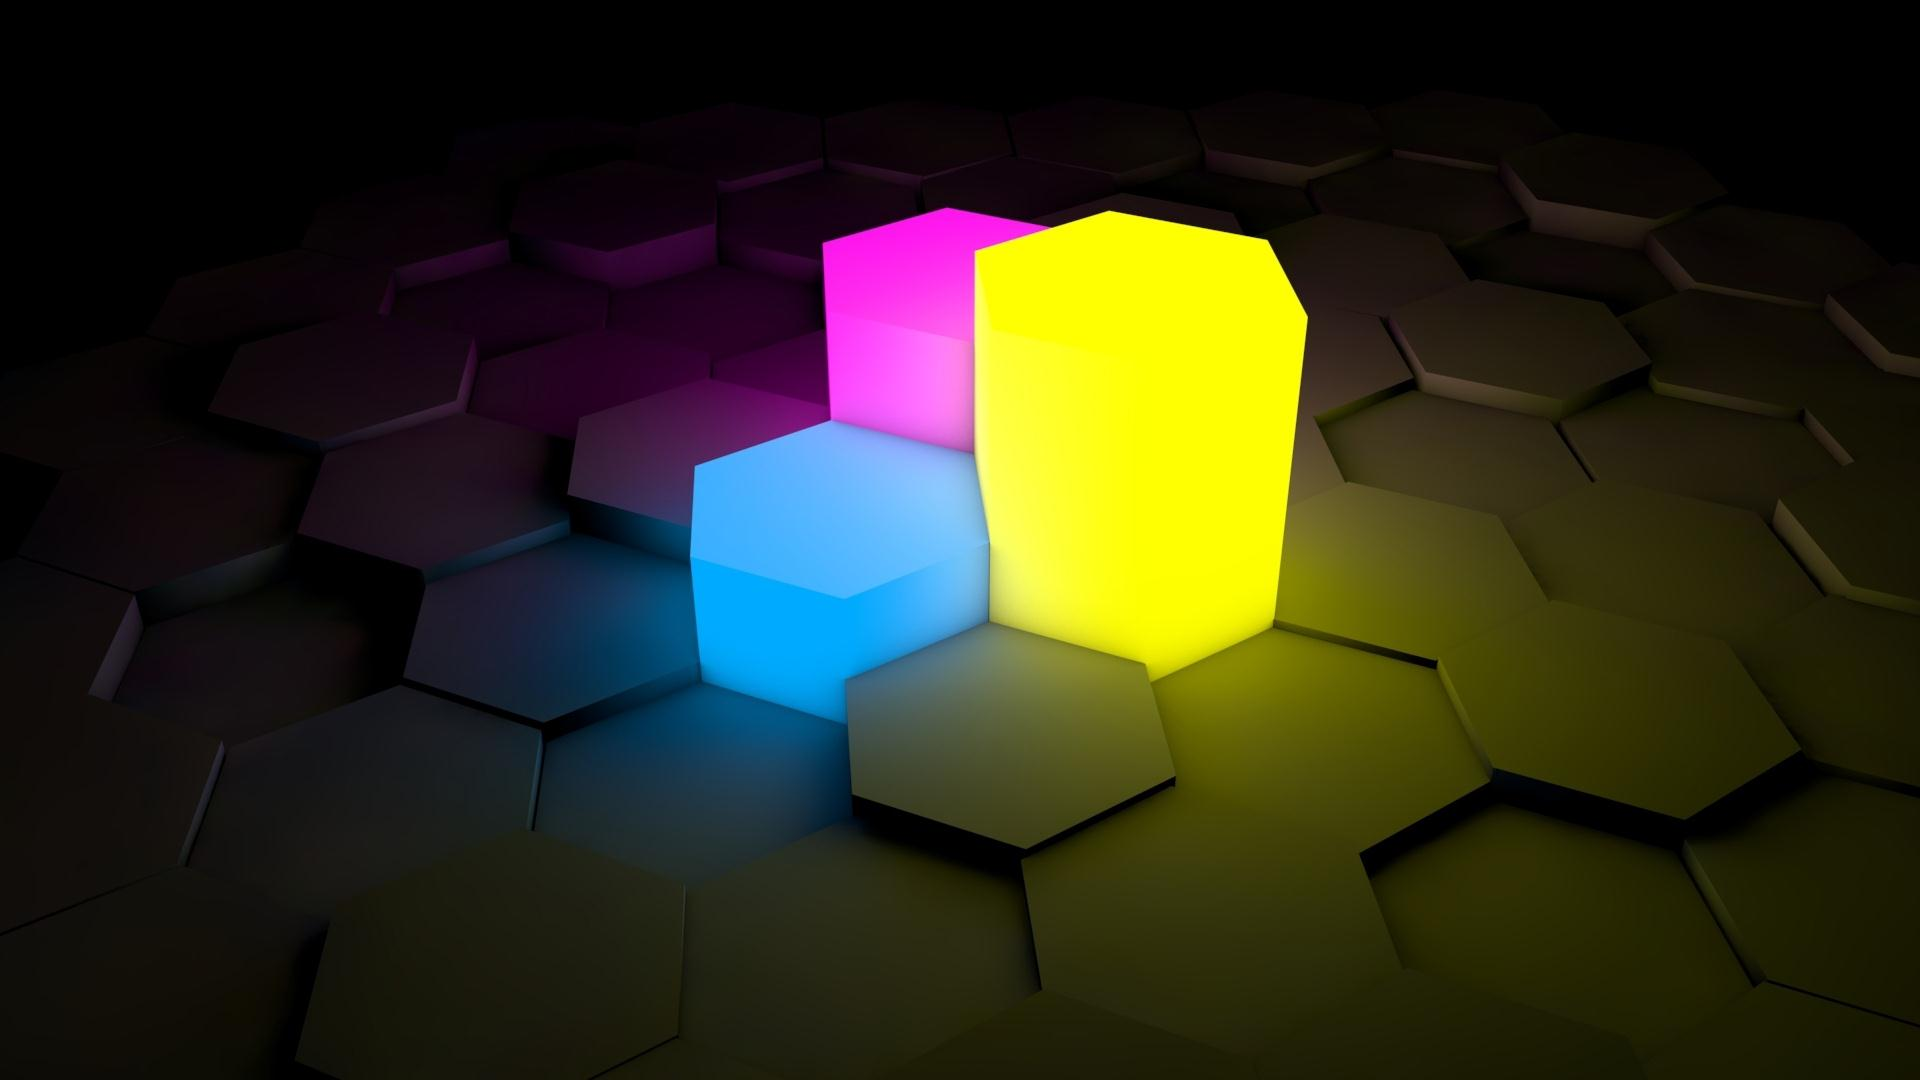 Figurines Lights On Neon Surface Wallpaper